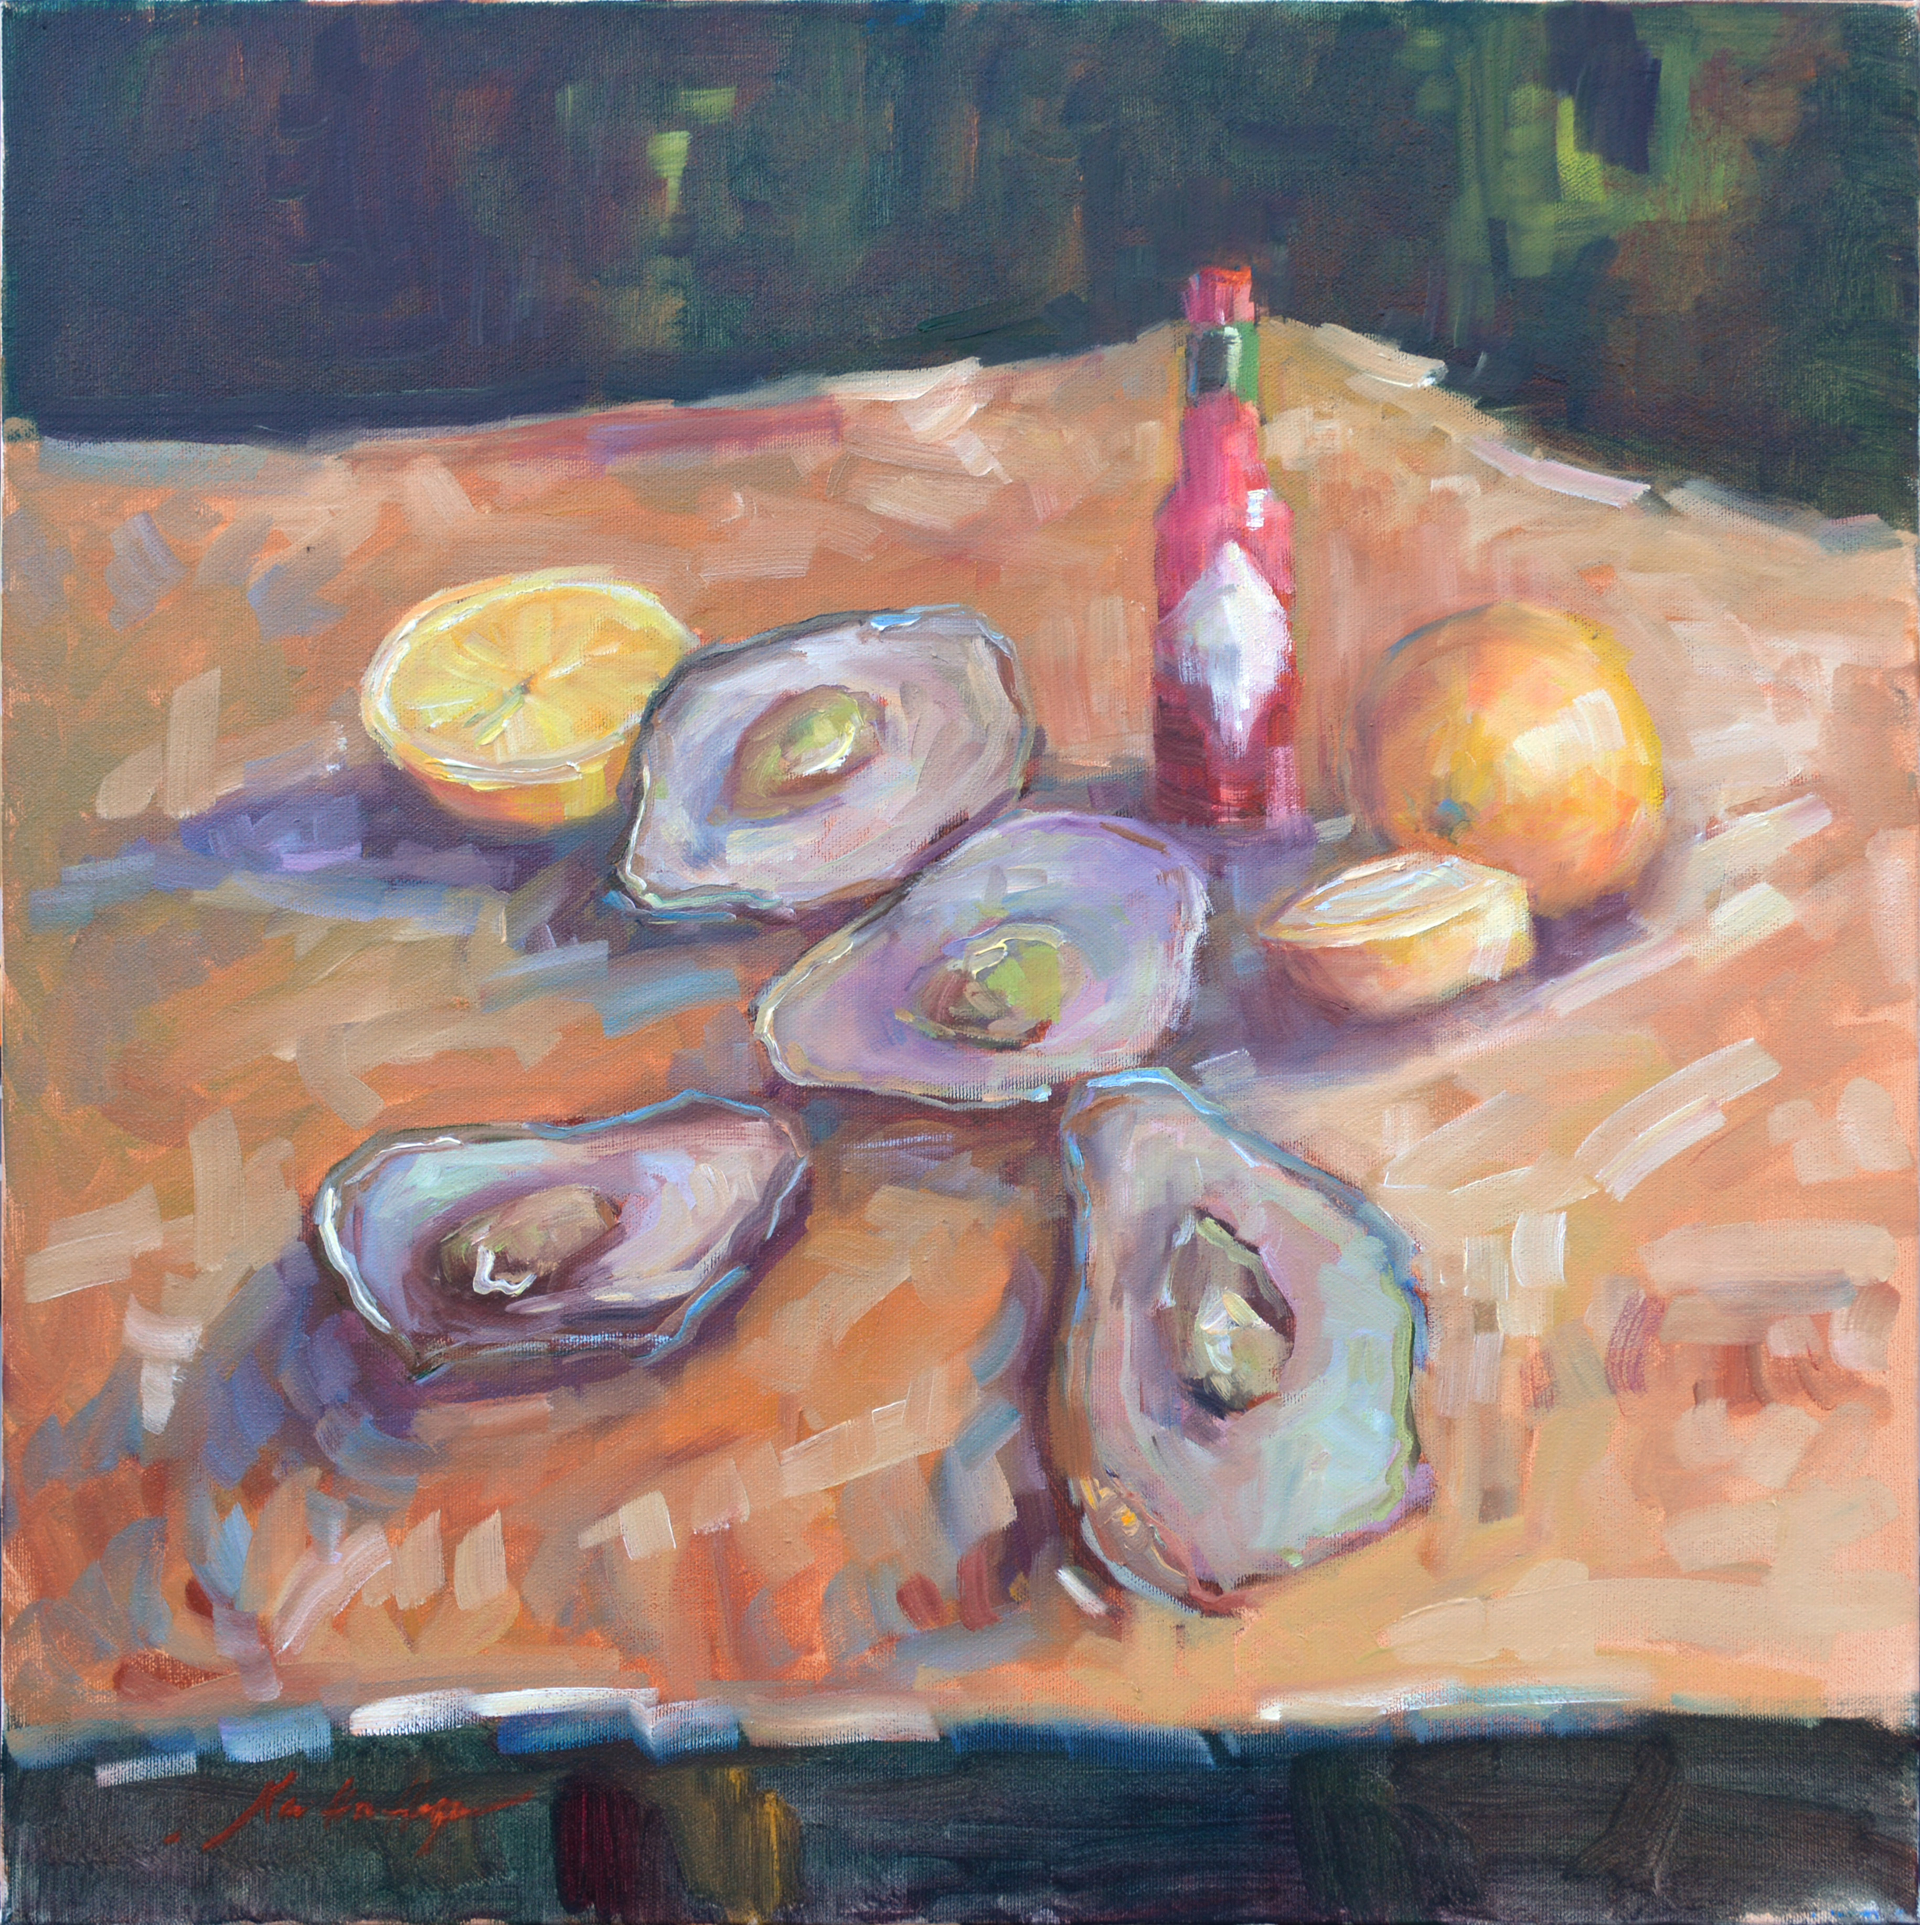 Oysters, Lemons & Hot Sauce by Karen Hewitt Hagan